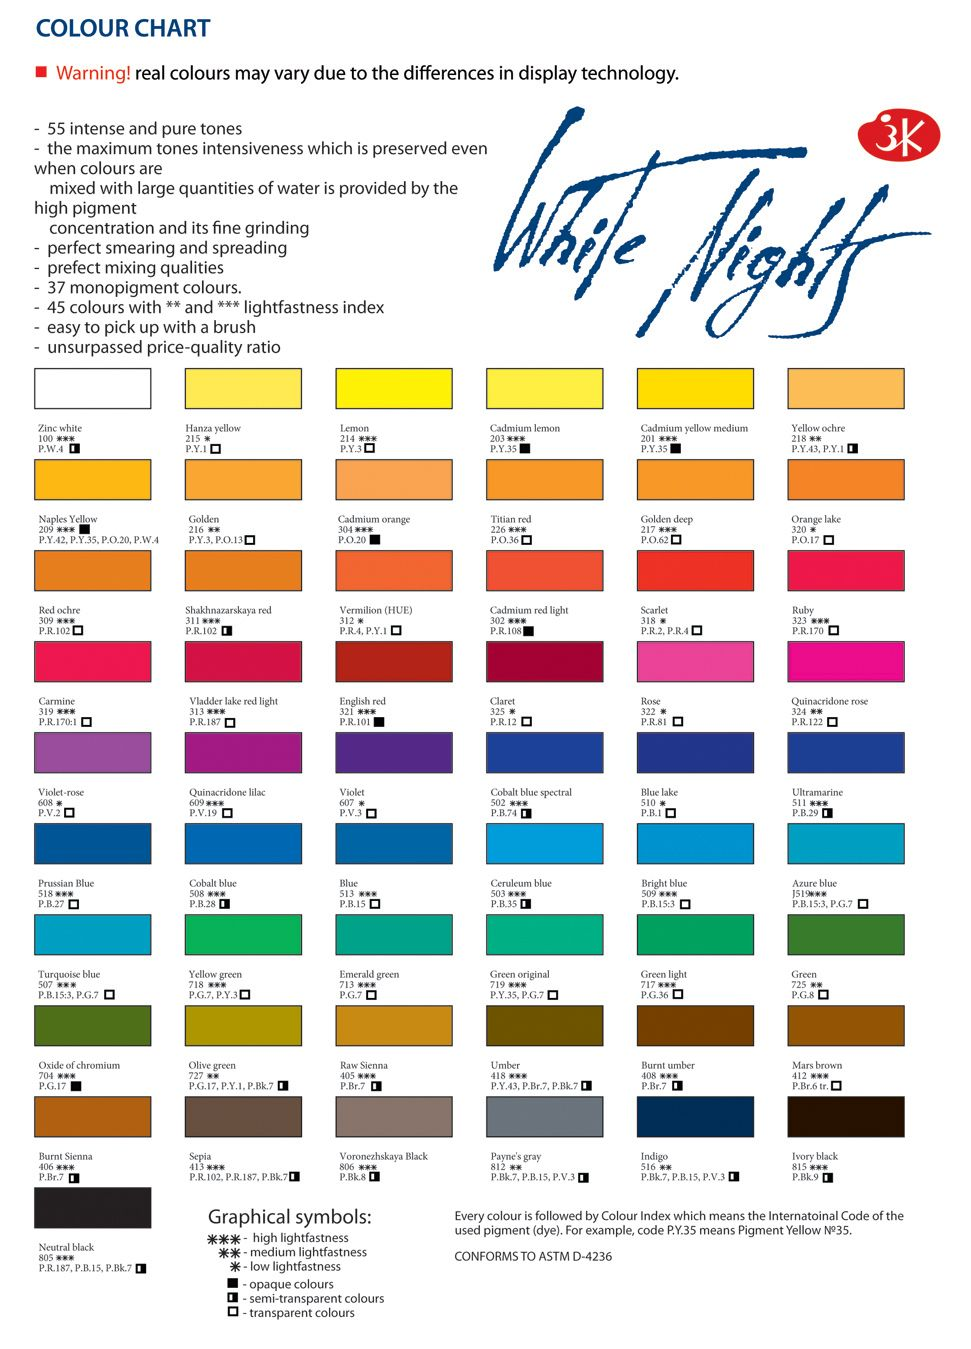 Doodlewash review white nights watercolours watercolor and white nights watercolour chart nvjuhfo Gallery